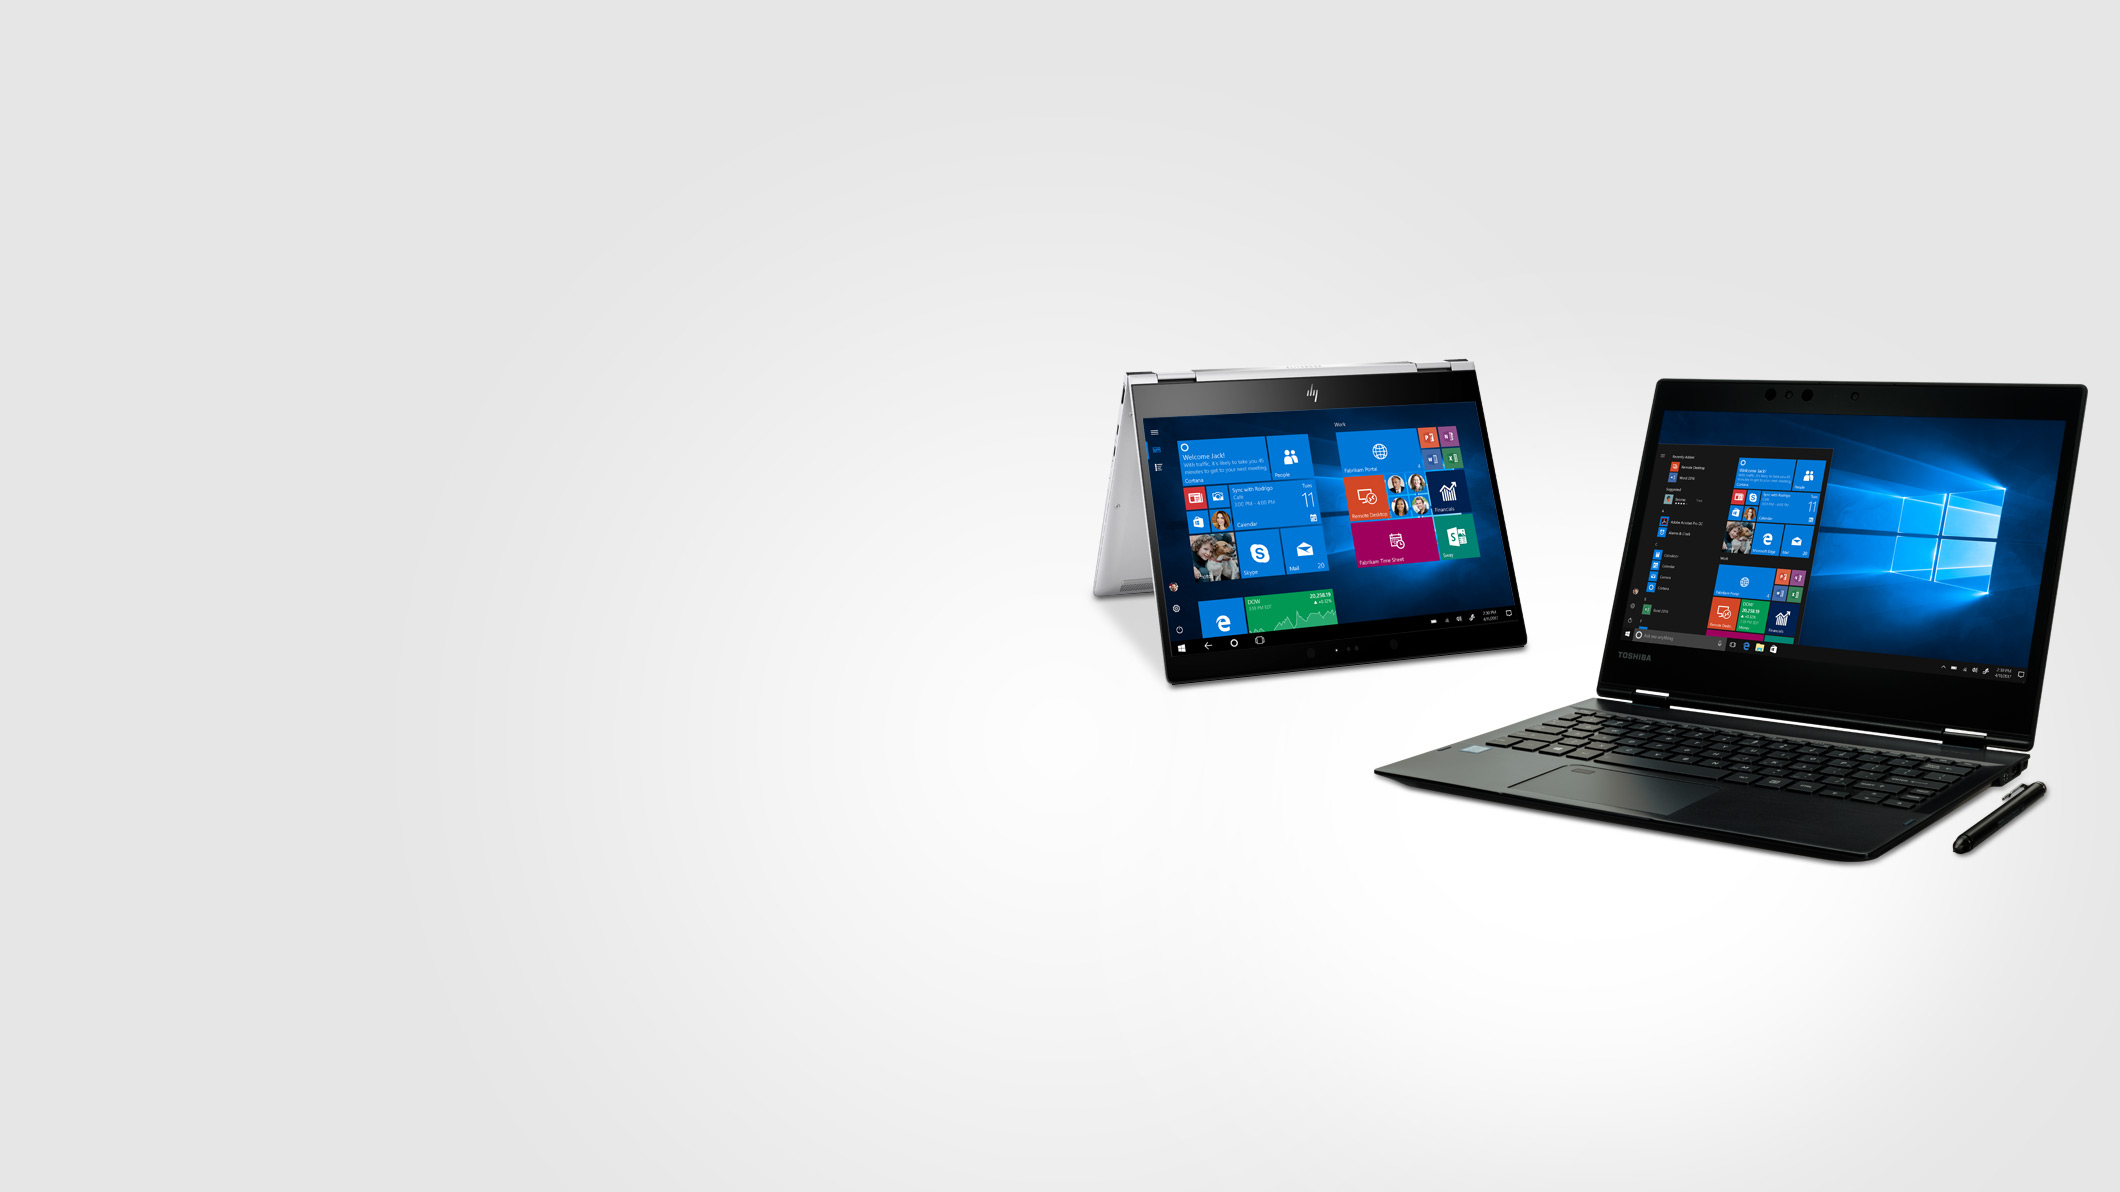 Two Windows 10 Pro laptops displaying Windows 10